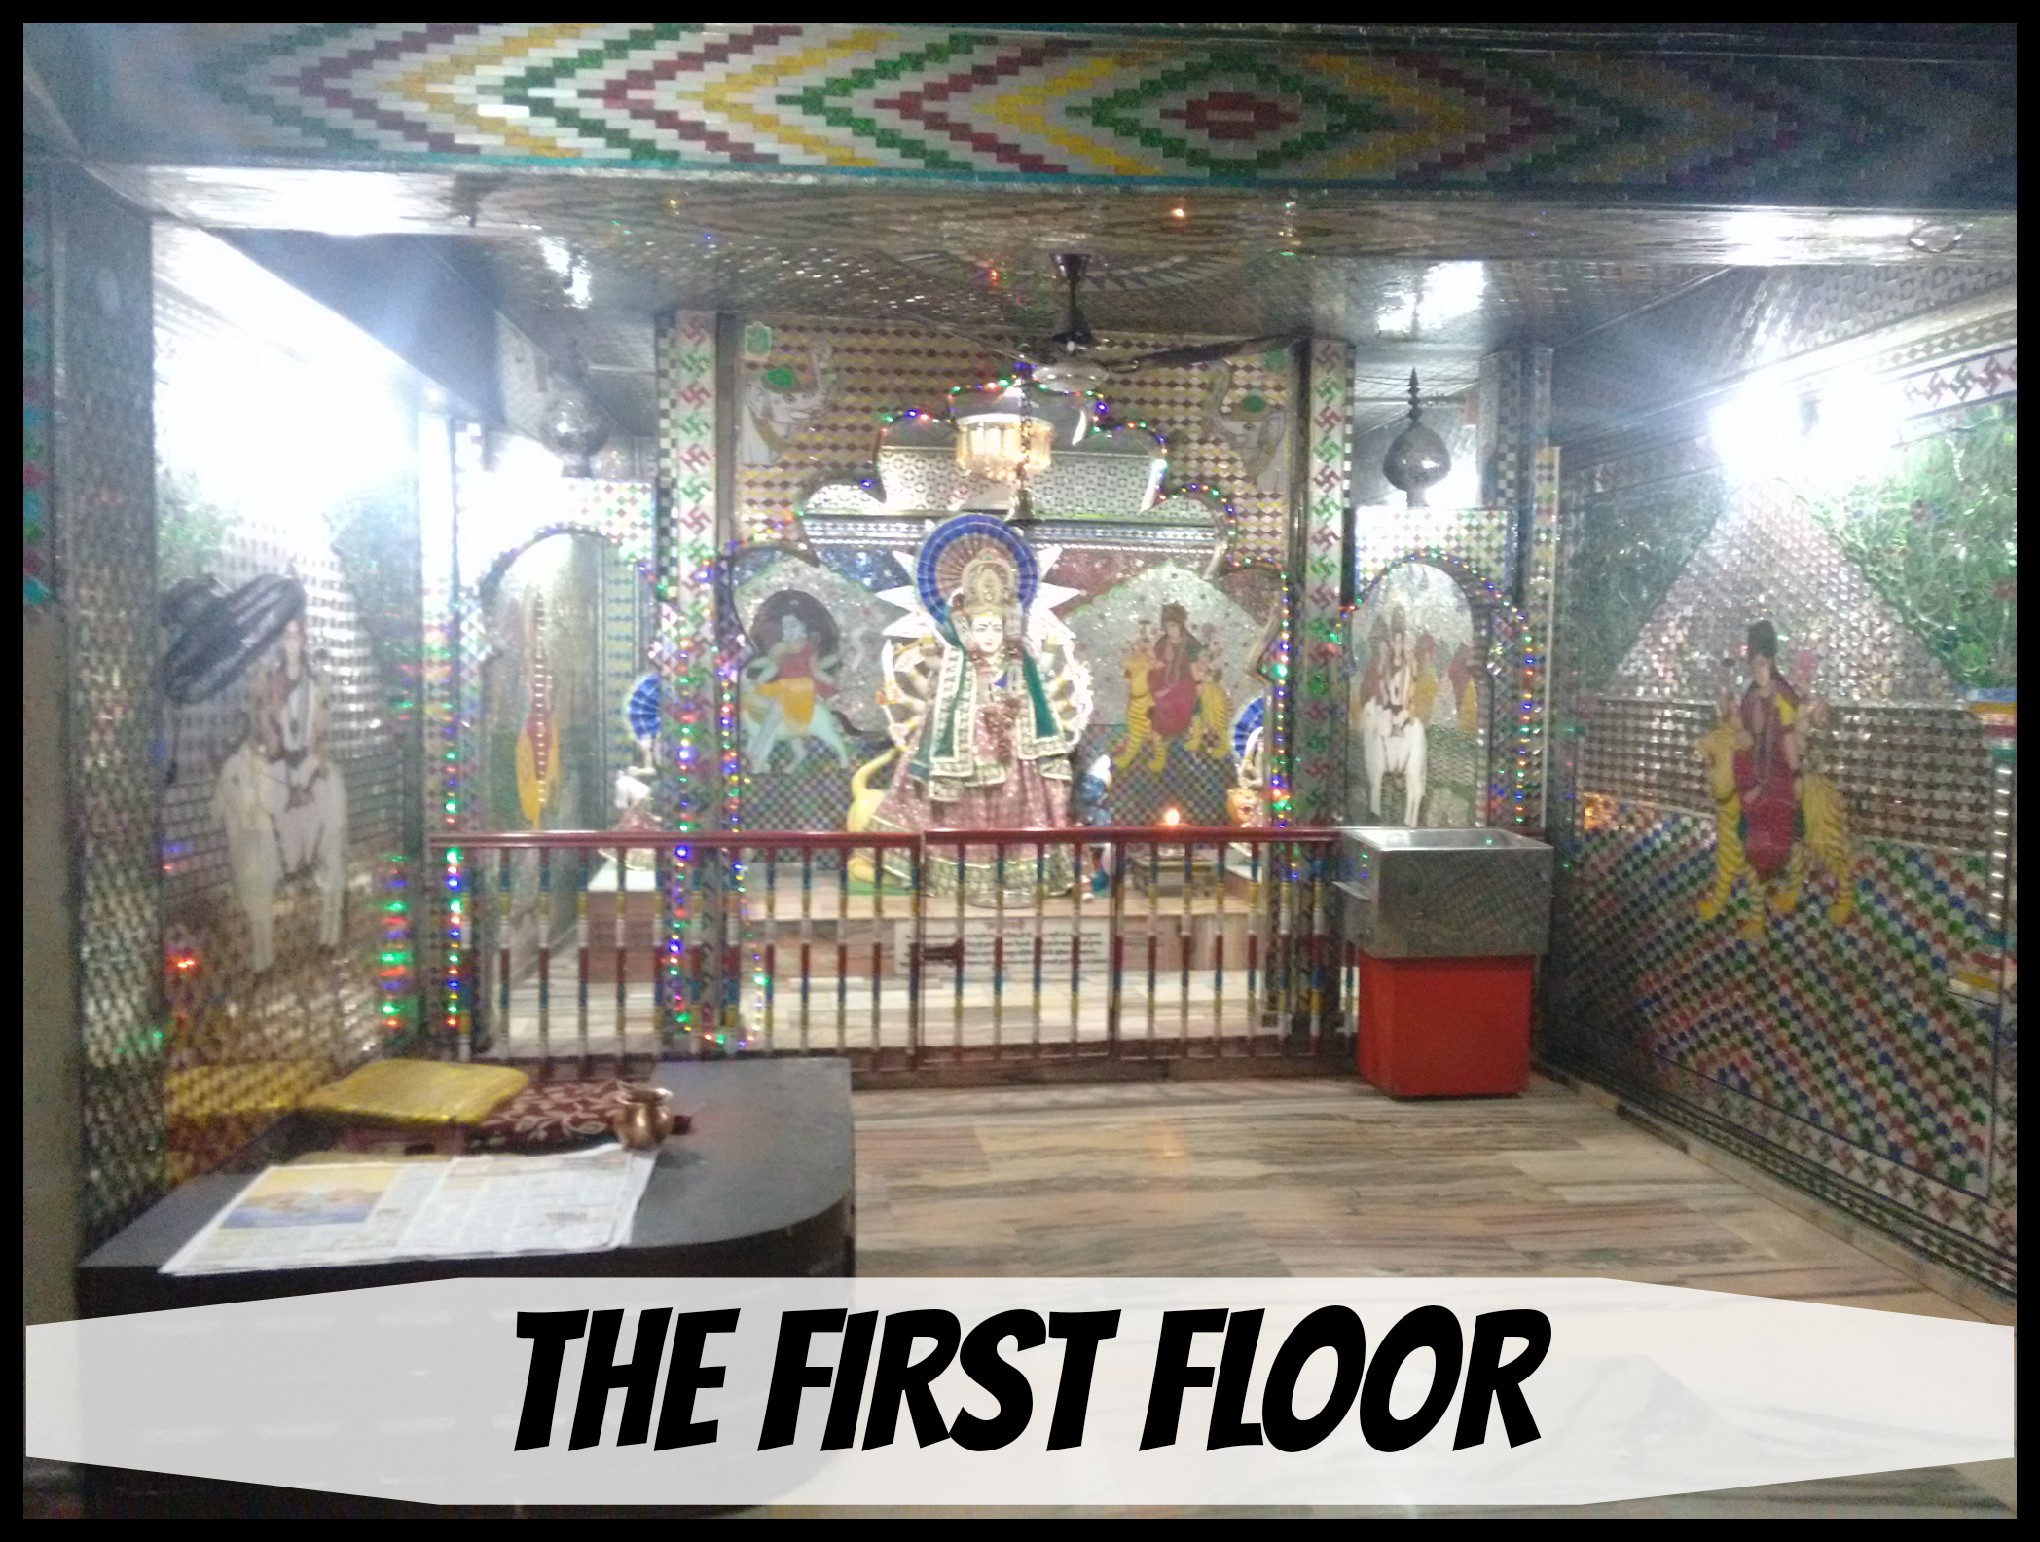 THE FIRST FLOOR OF THE MANDIR